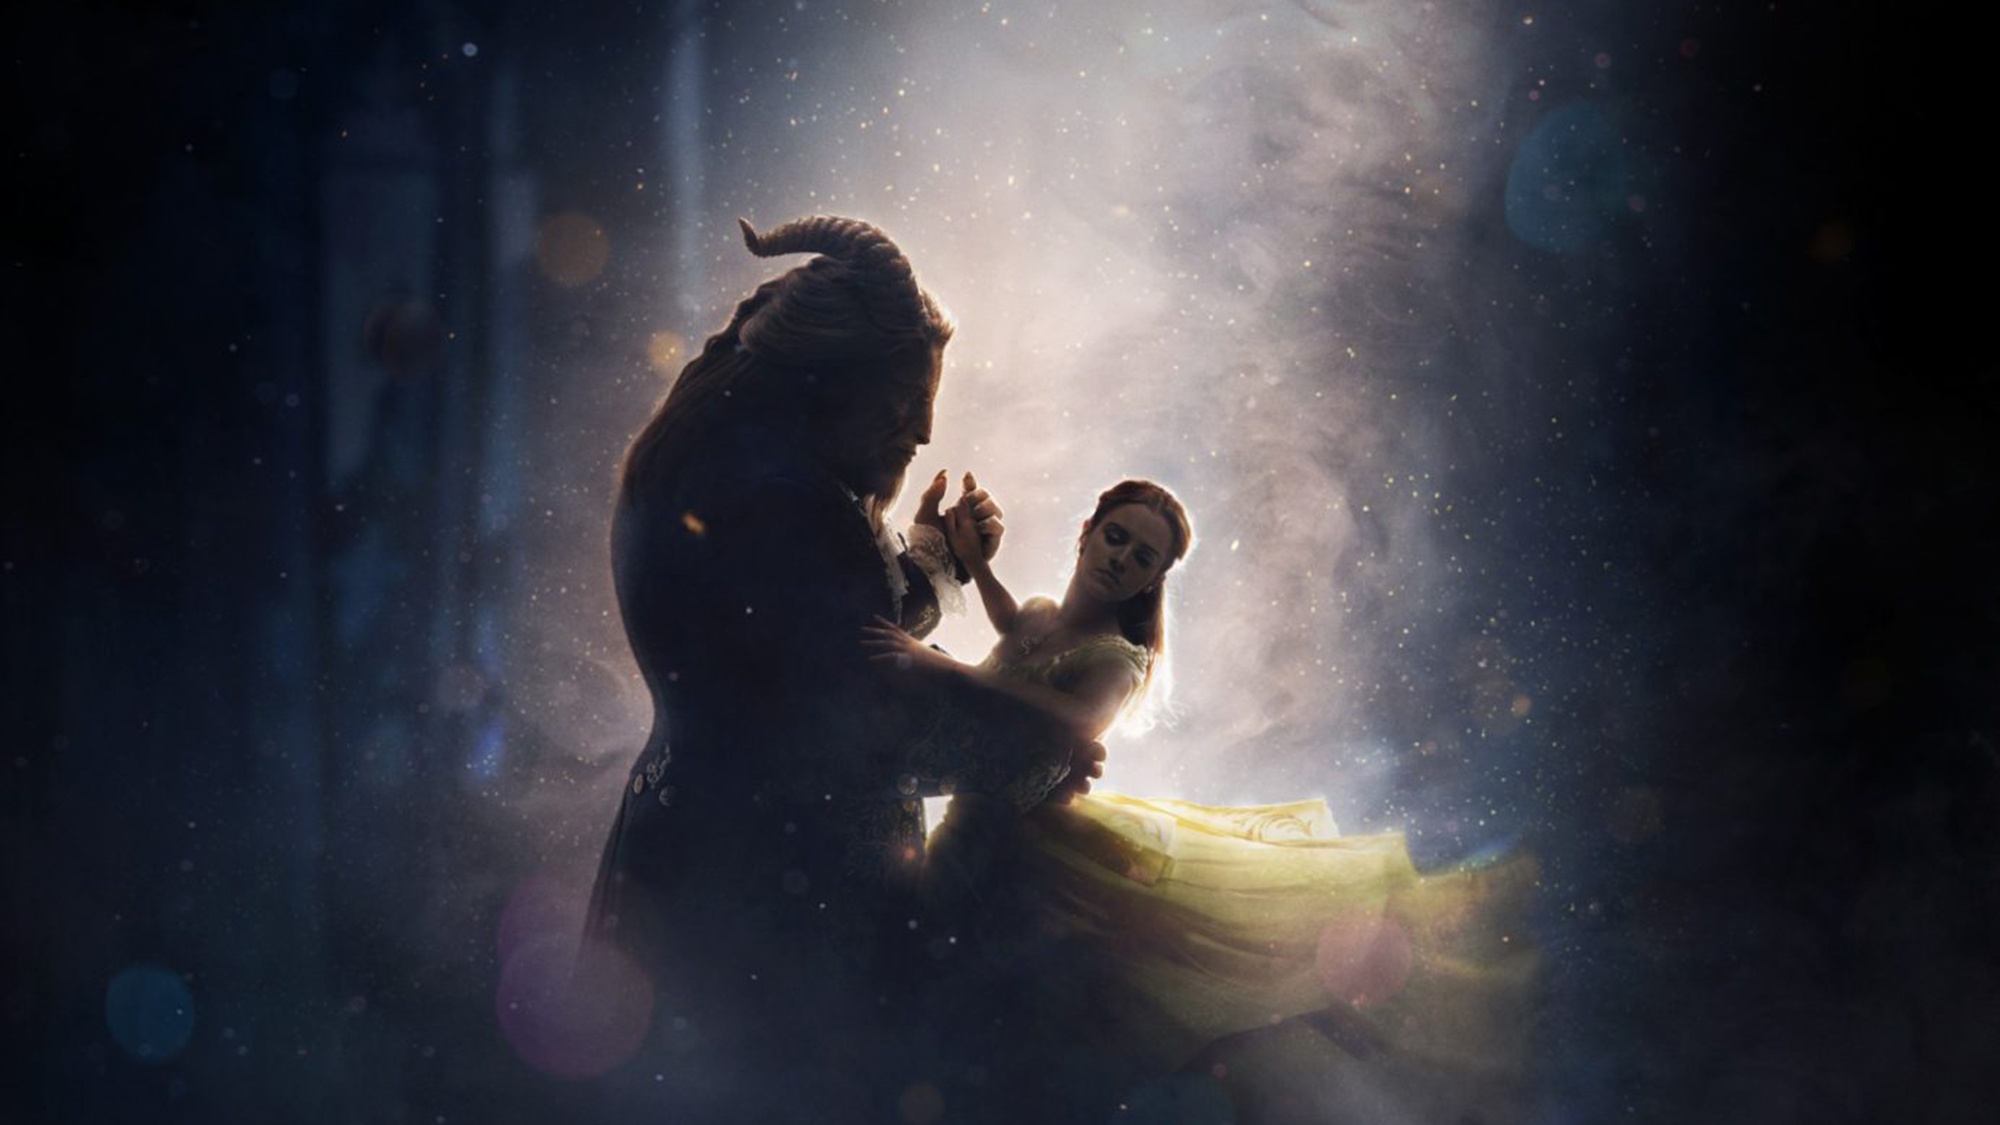 The poster for Dan Stevens and Emma Watson's 'Beauty and the Beast'. (Pic: Disney)